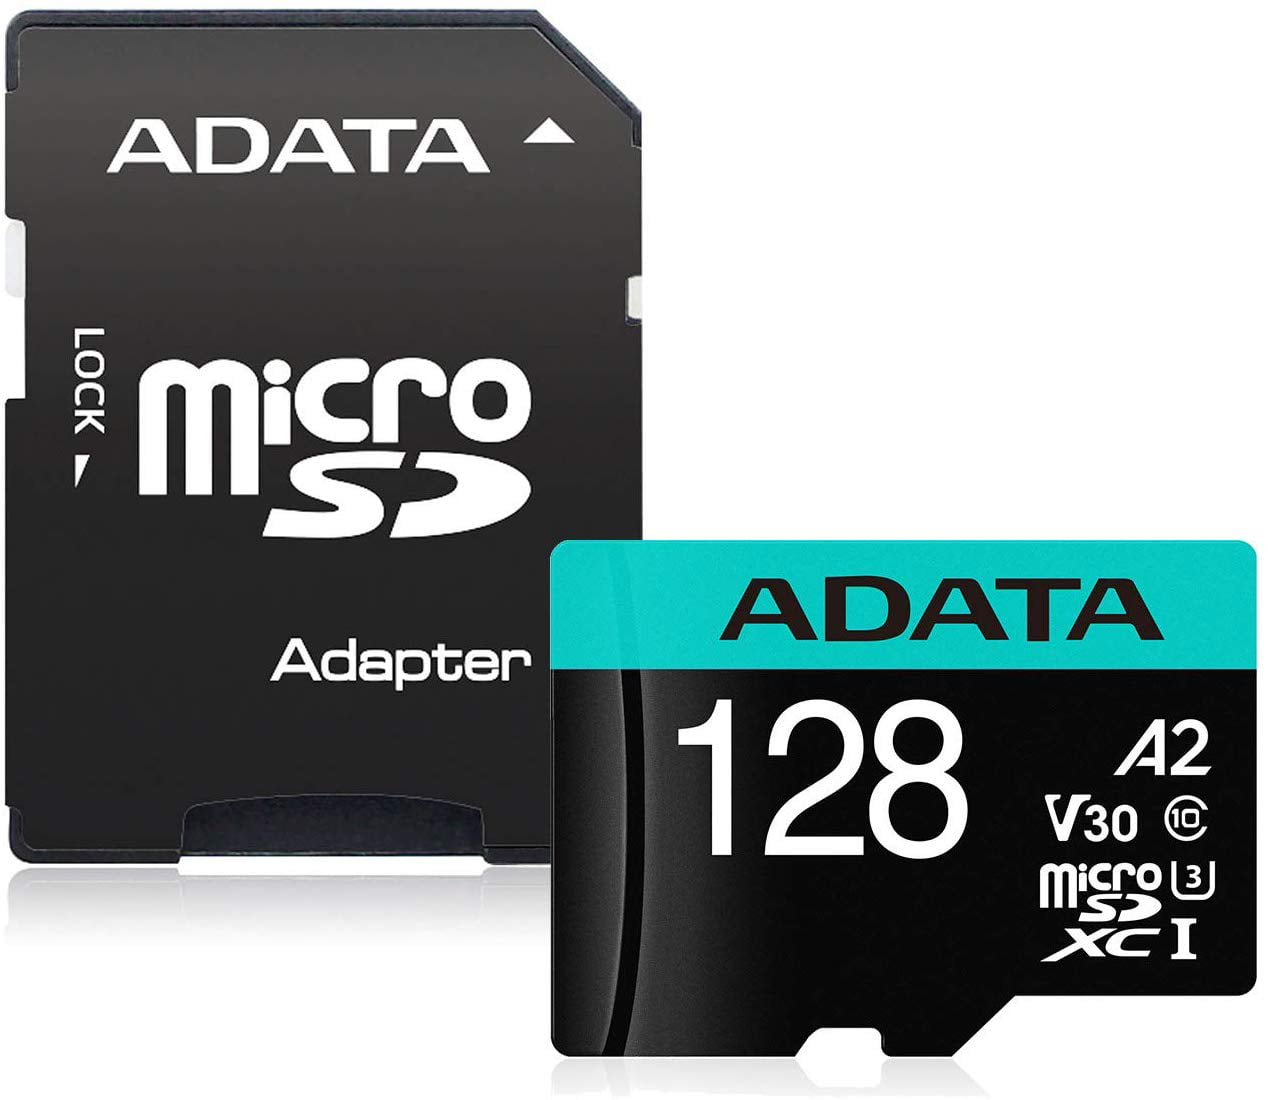 Heat /& Cold Resistant MIXZA Performance Grade 128GB Verified for Alcatel A30 Fierce MicroSDXC Card is Pro-Speed Built for Lifetime of Use! UHS-395MBs